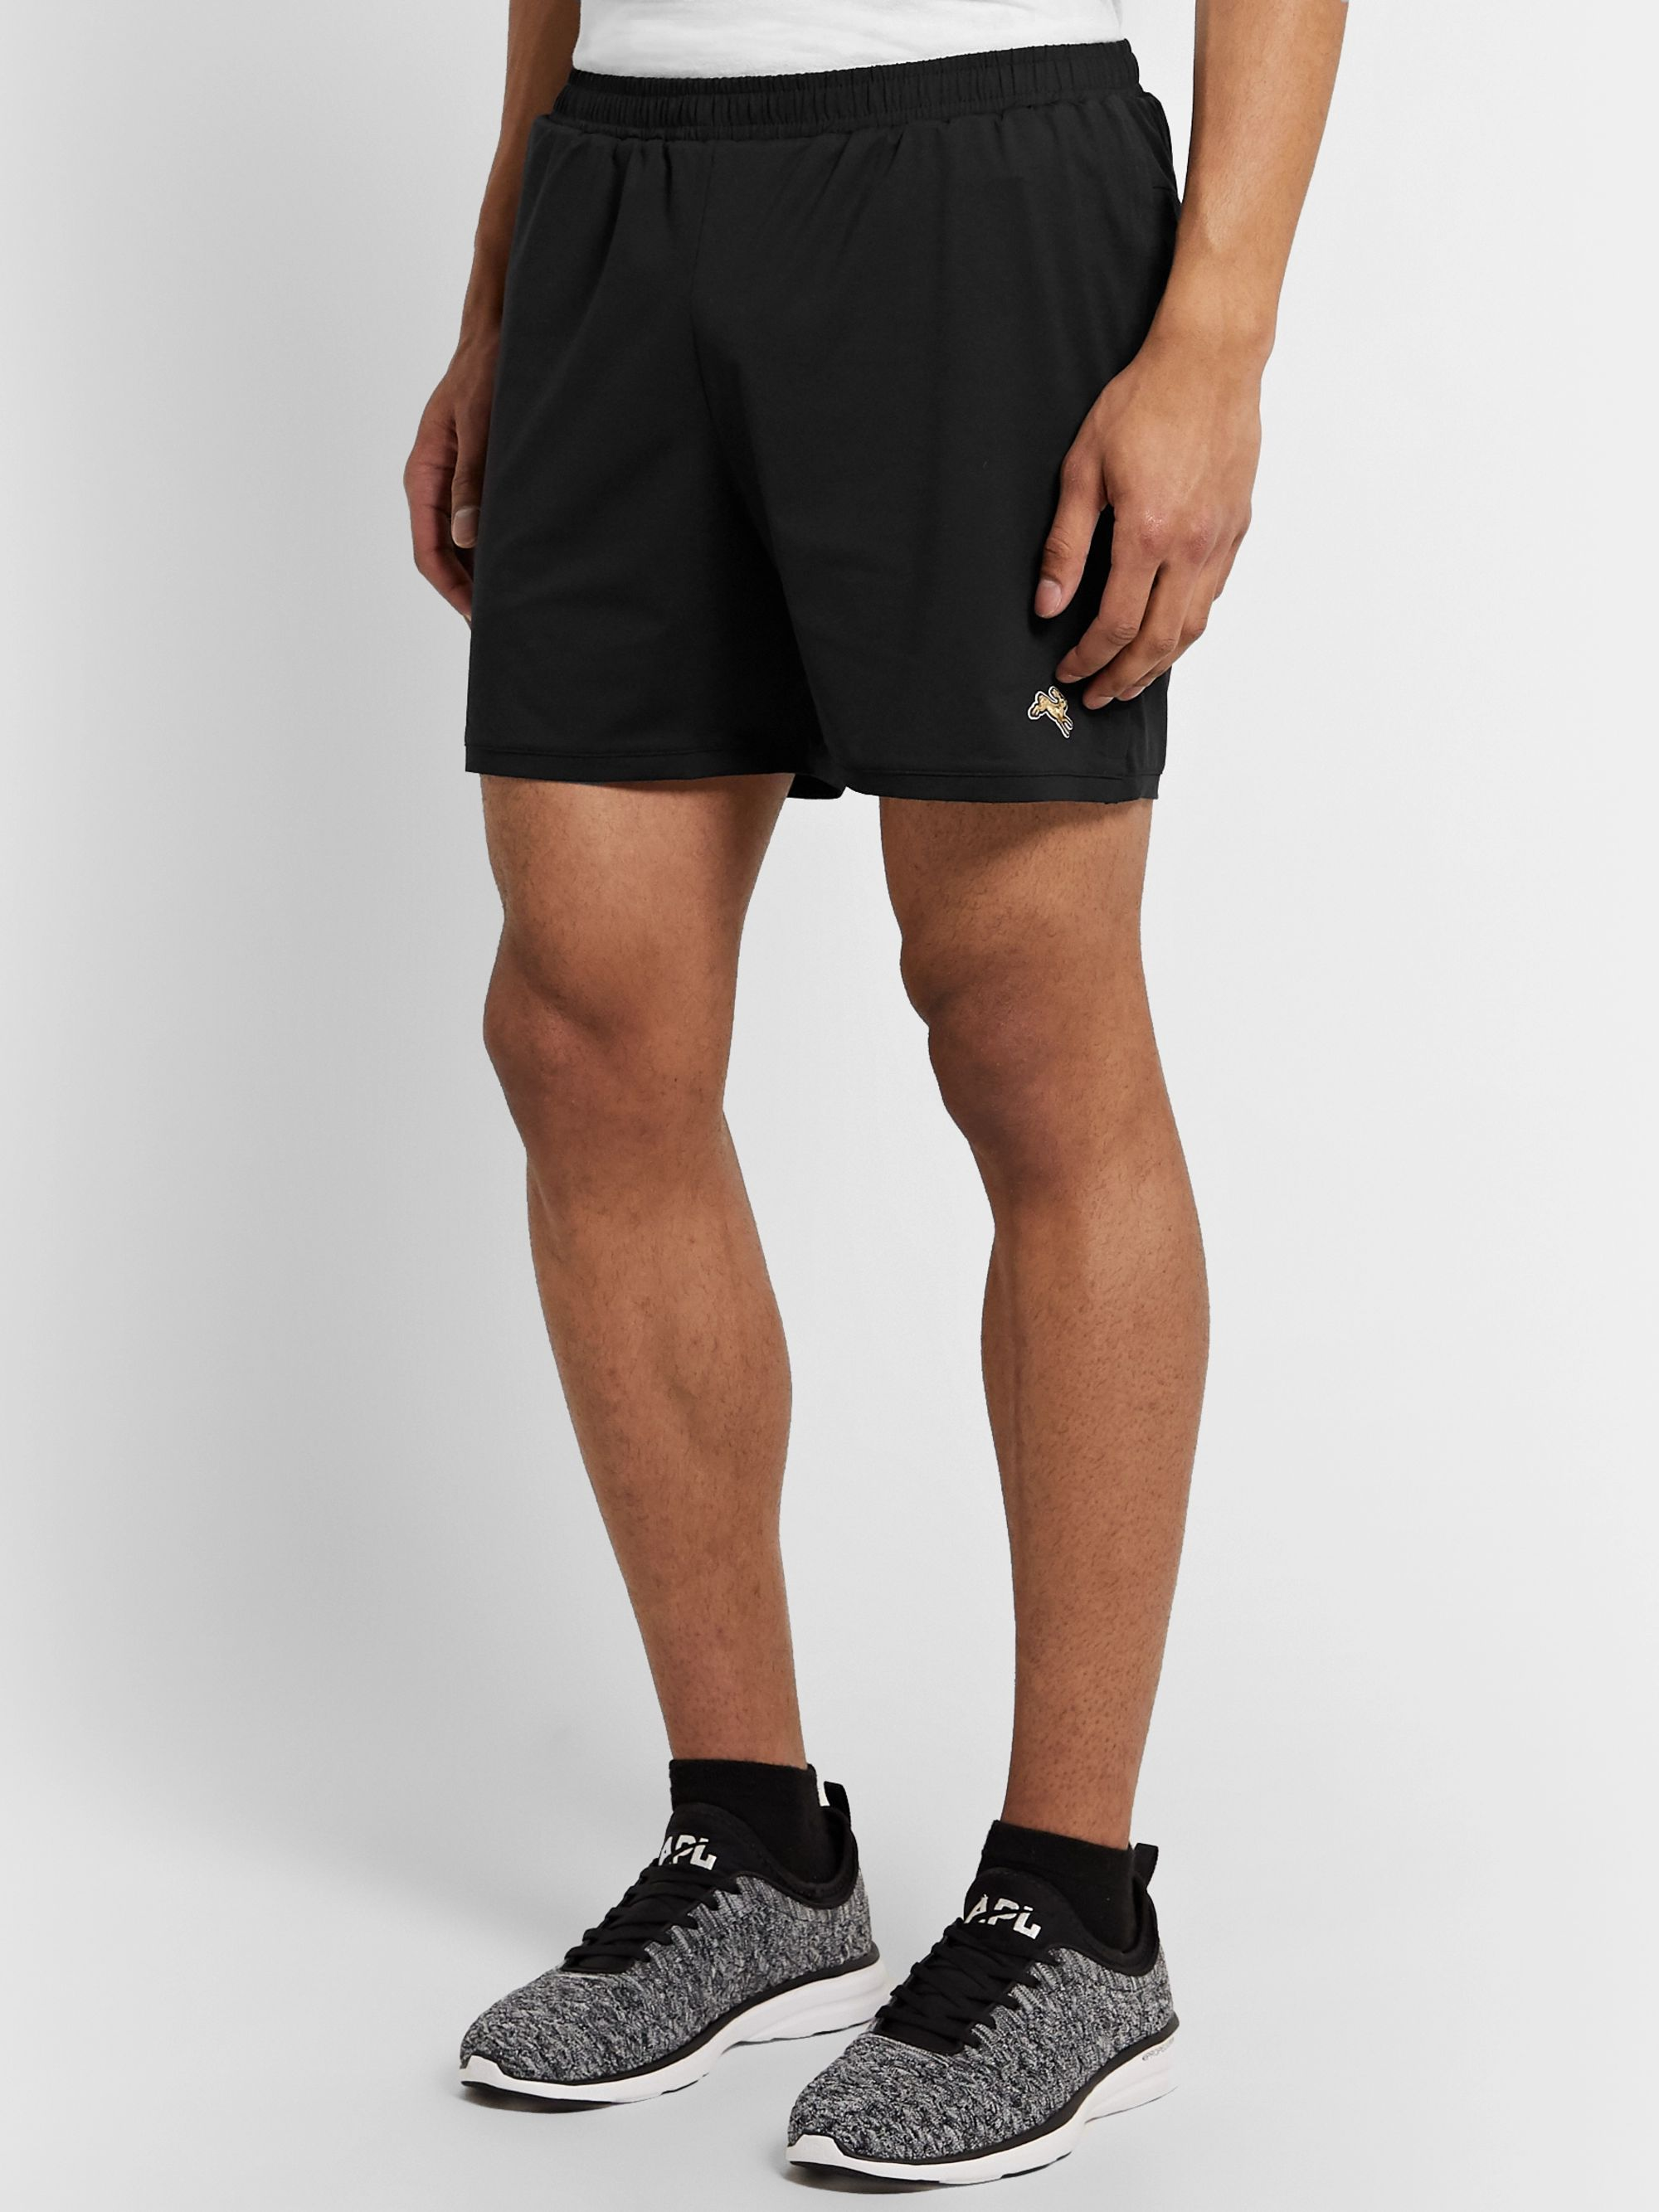 Tracksmith Session Veloce Shorts